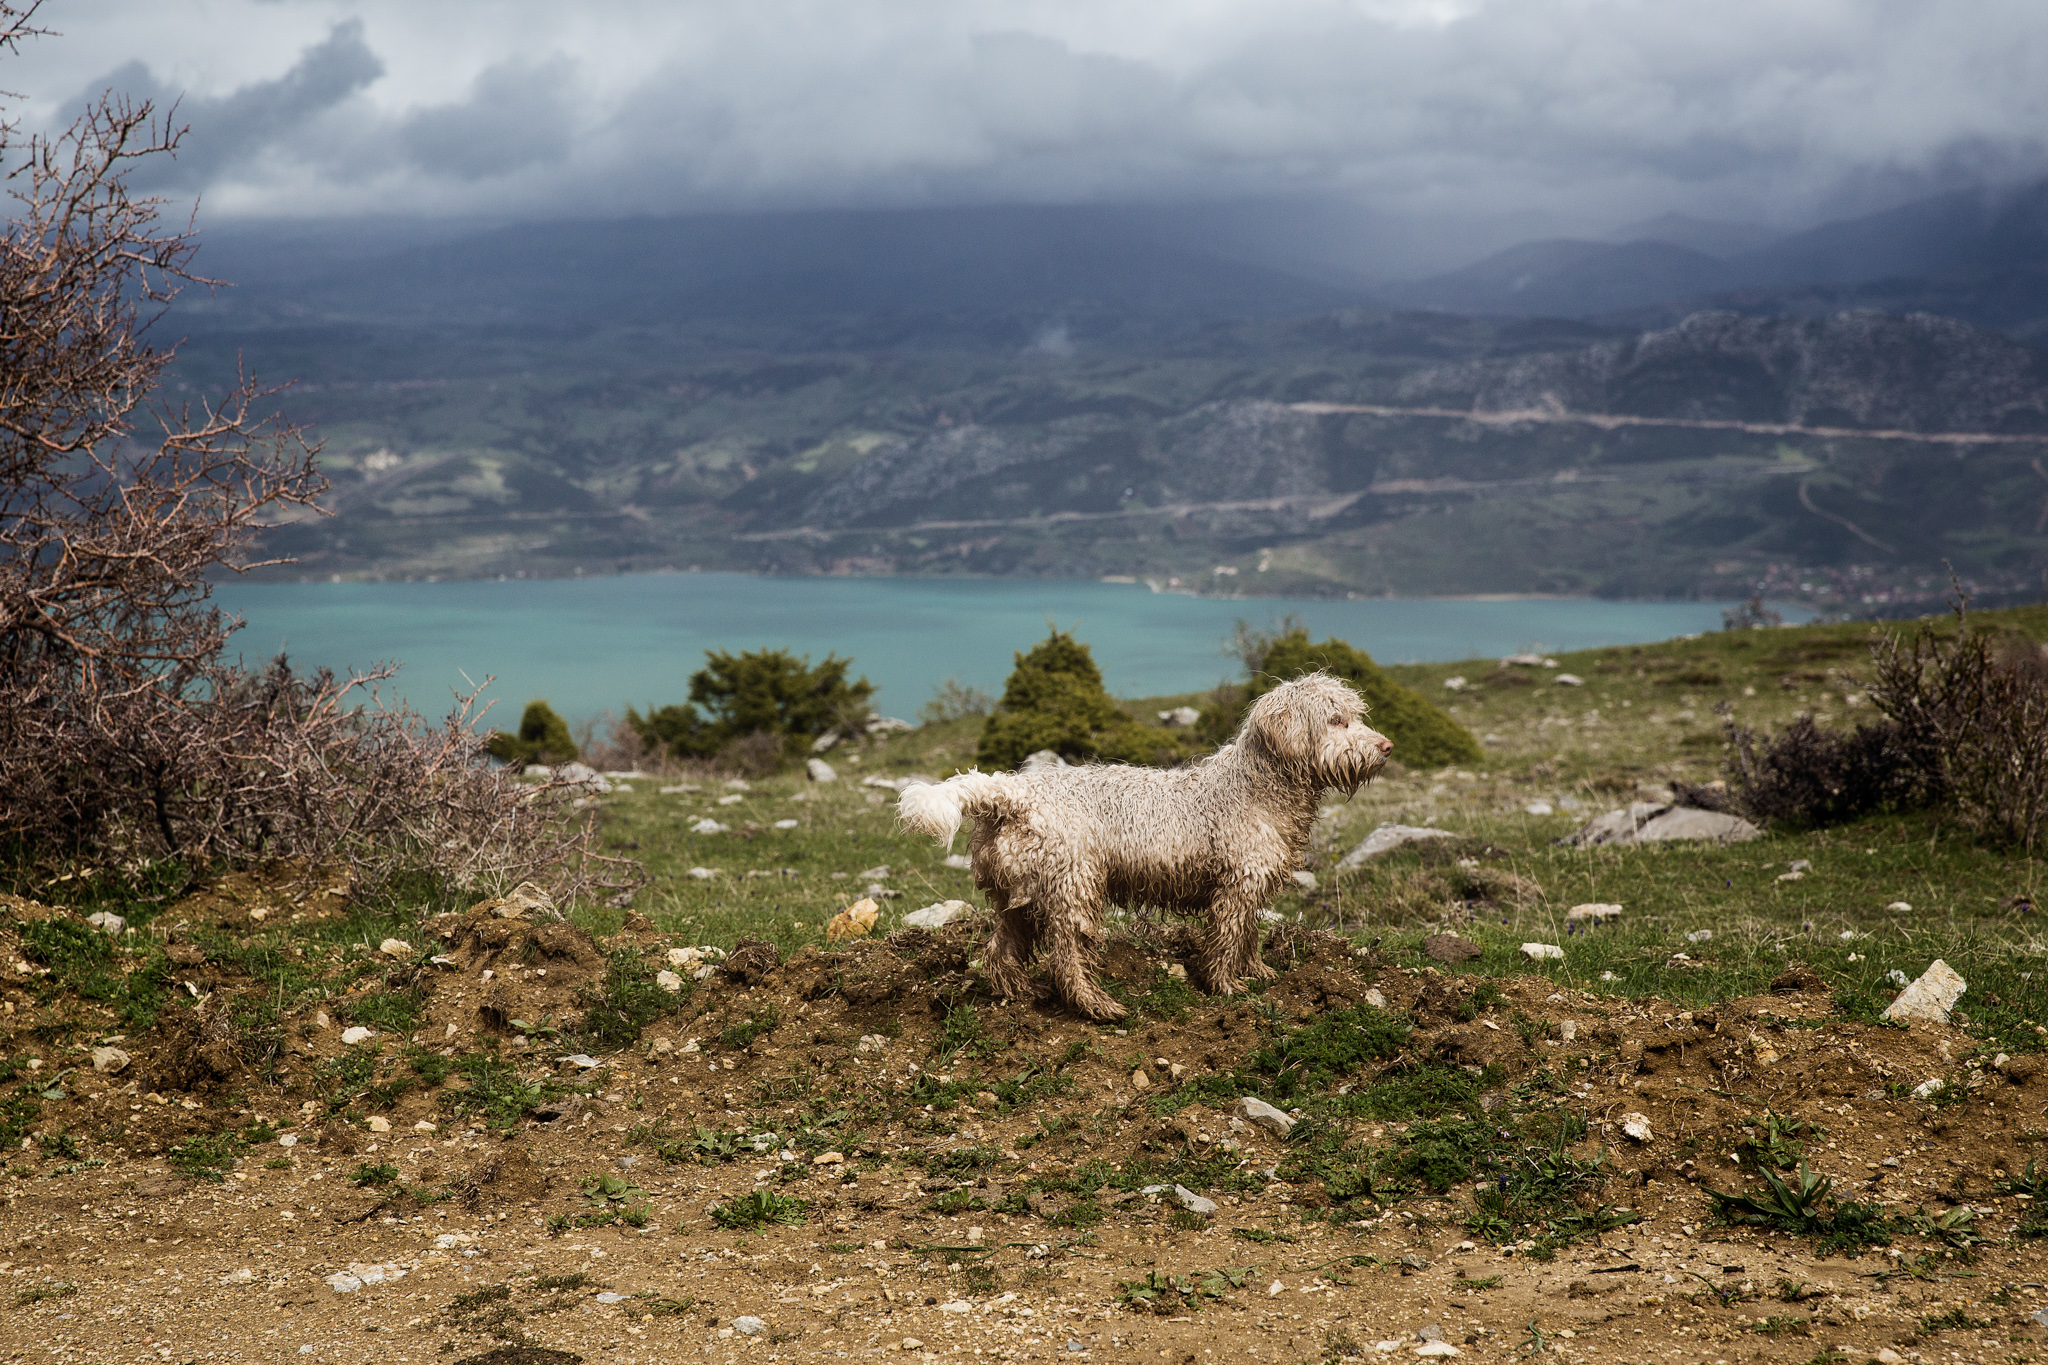 egirdir-to-silivri-mountain-3570-little-scruffy-dog-infront-of-lake.jpg